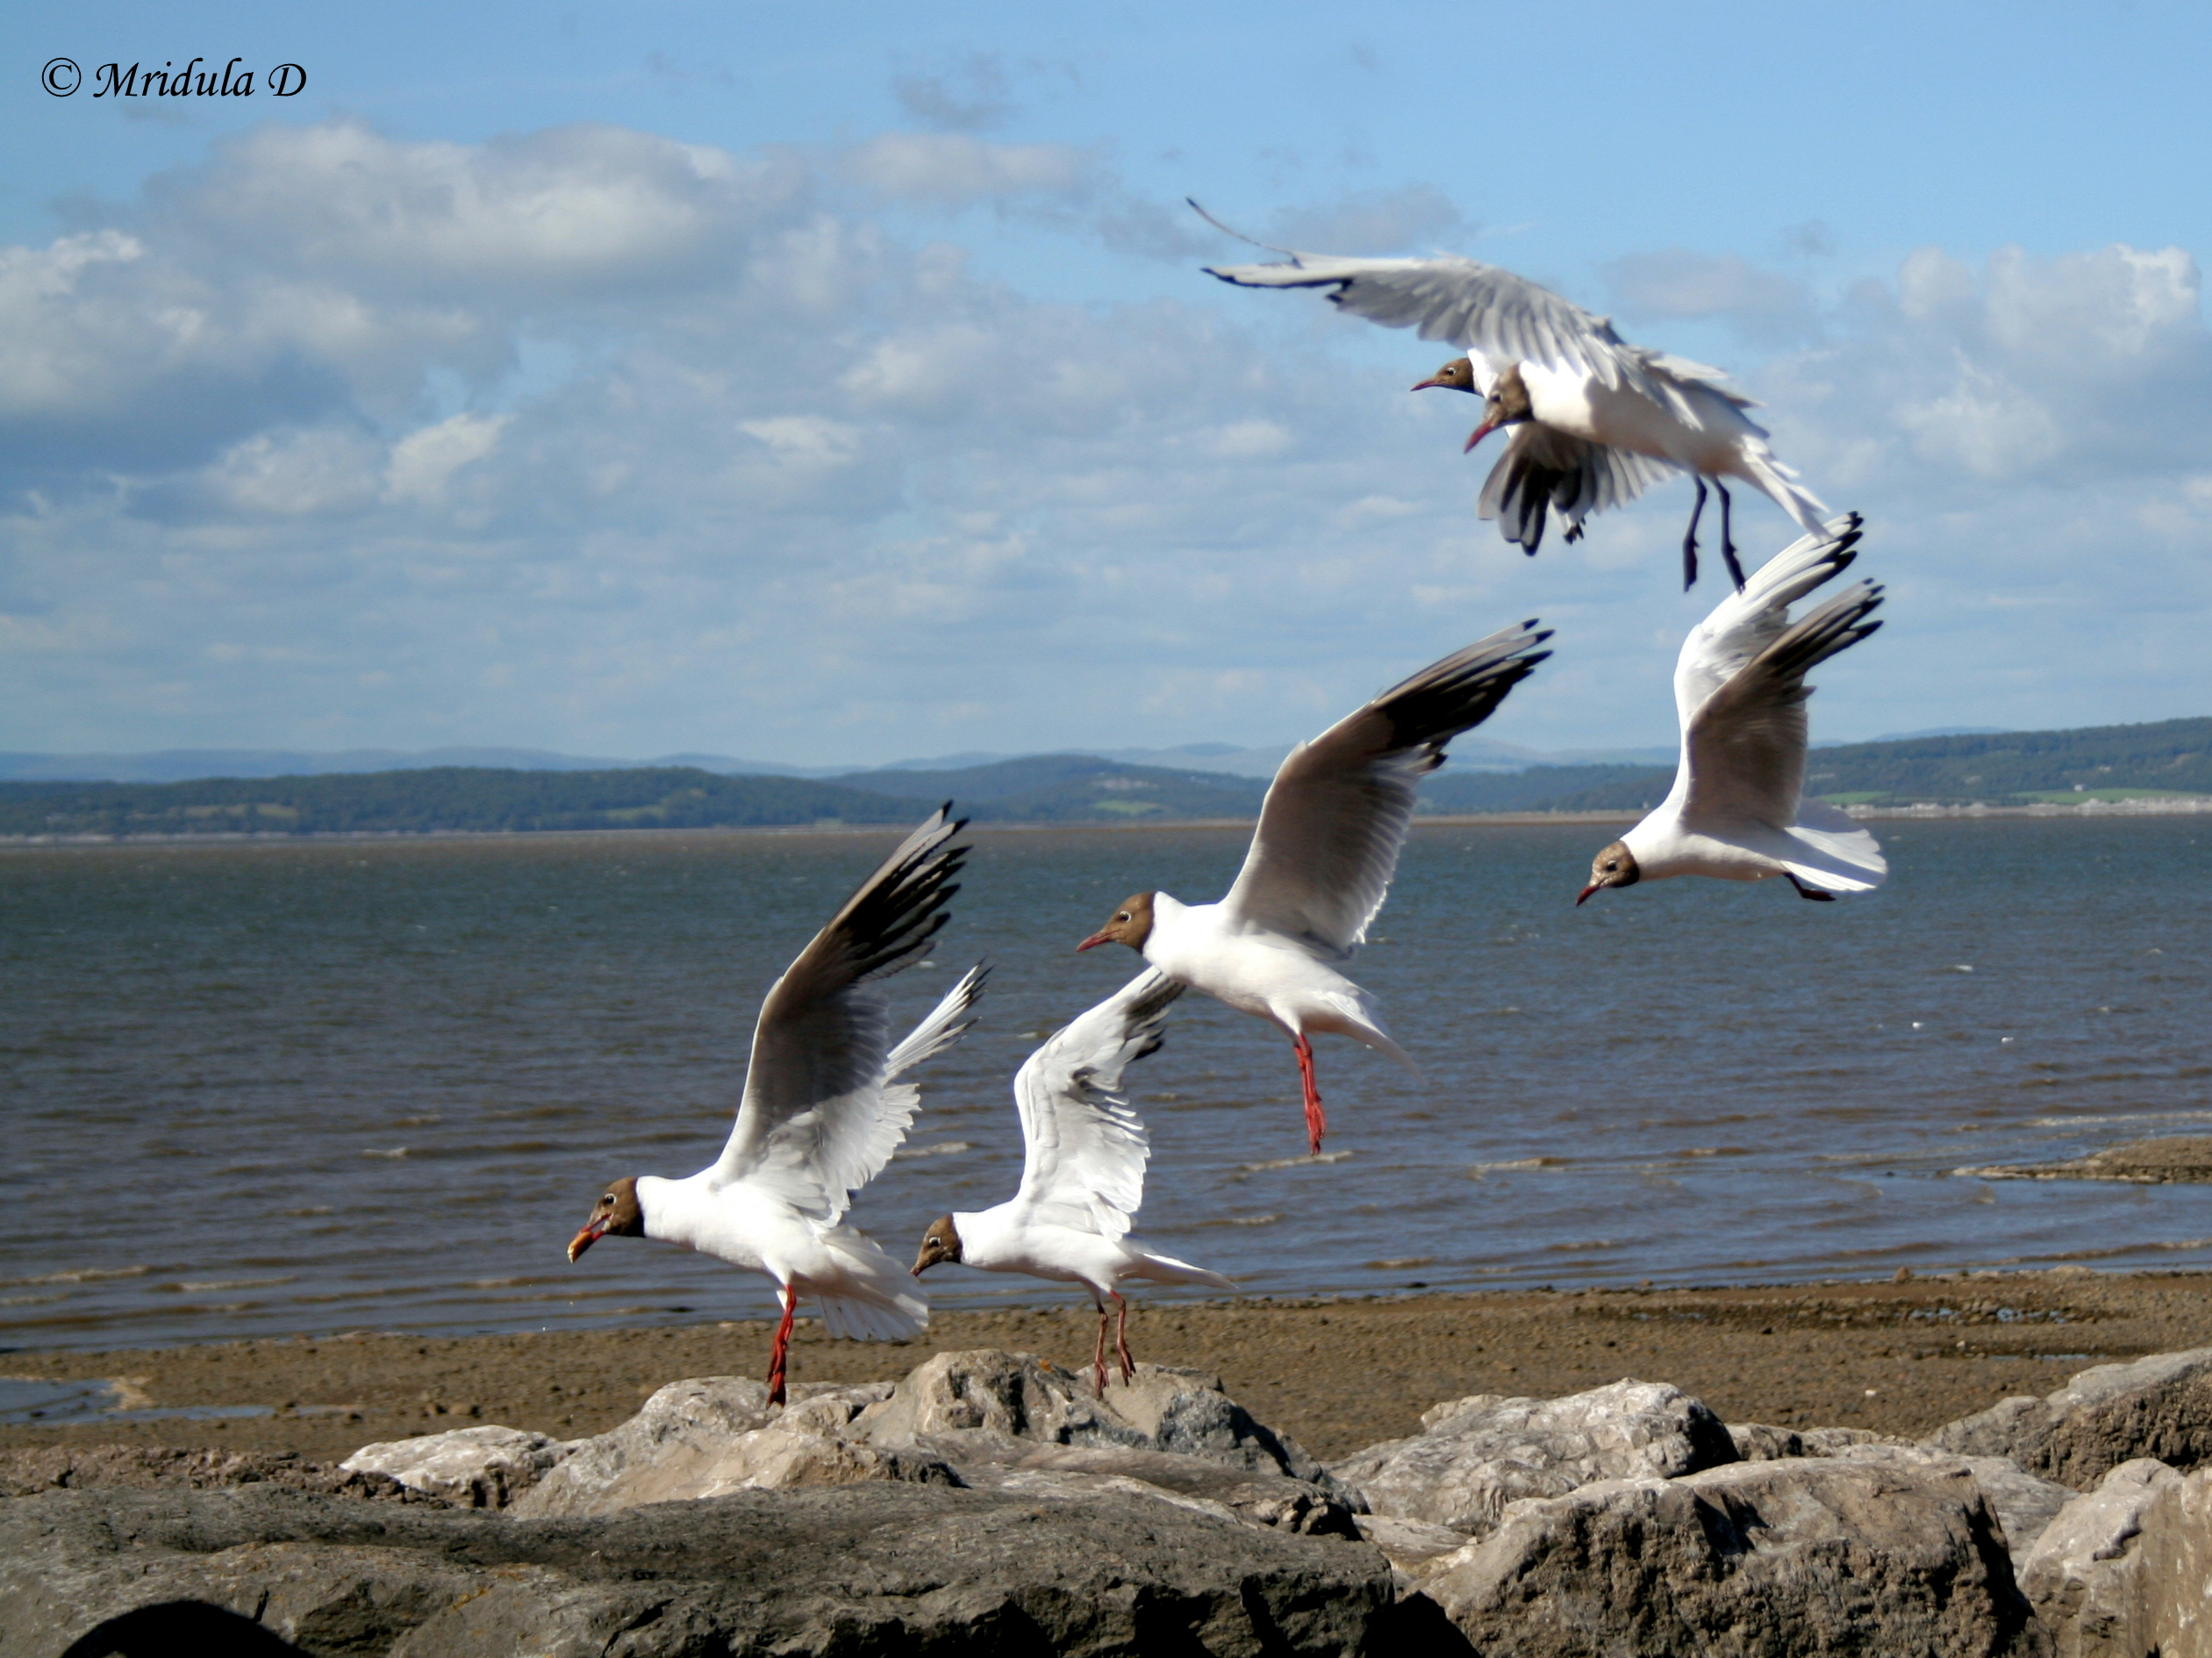 Seagulls at Morecambe, UK